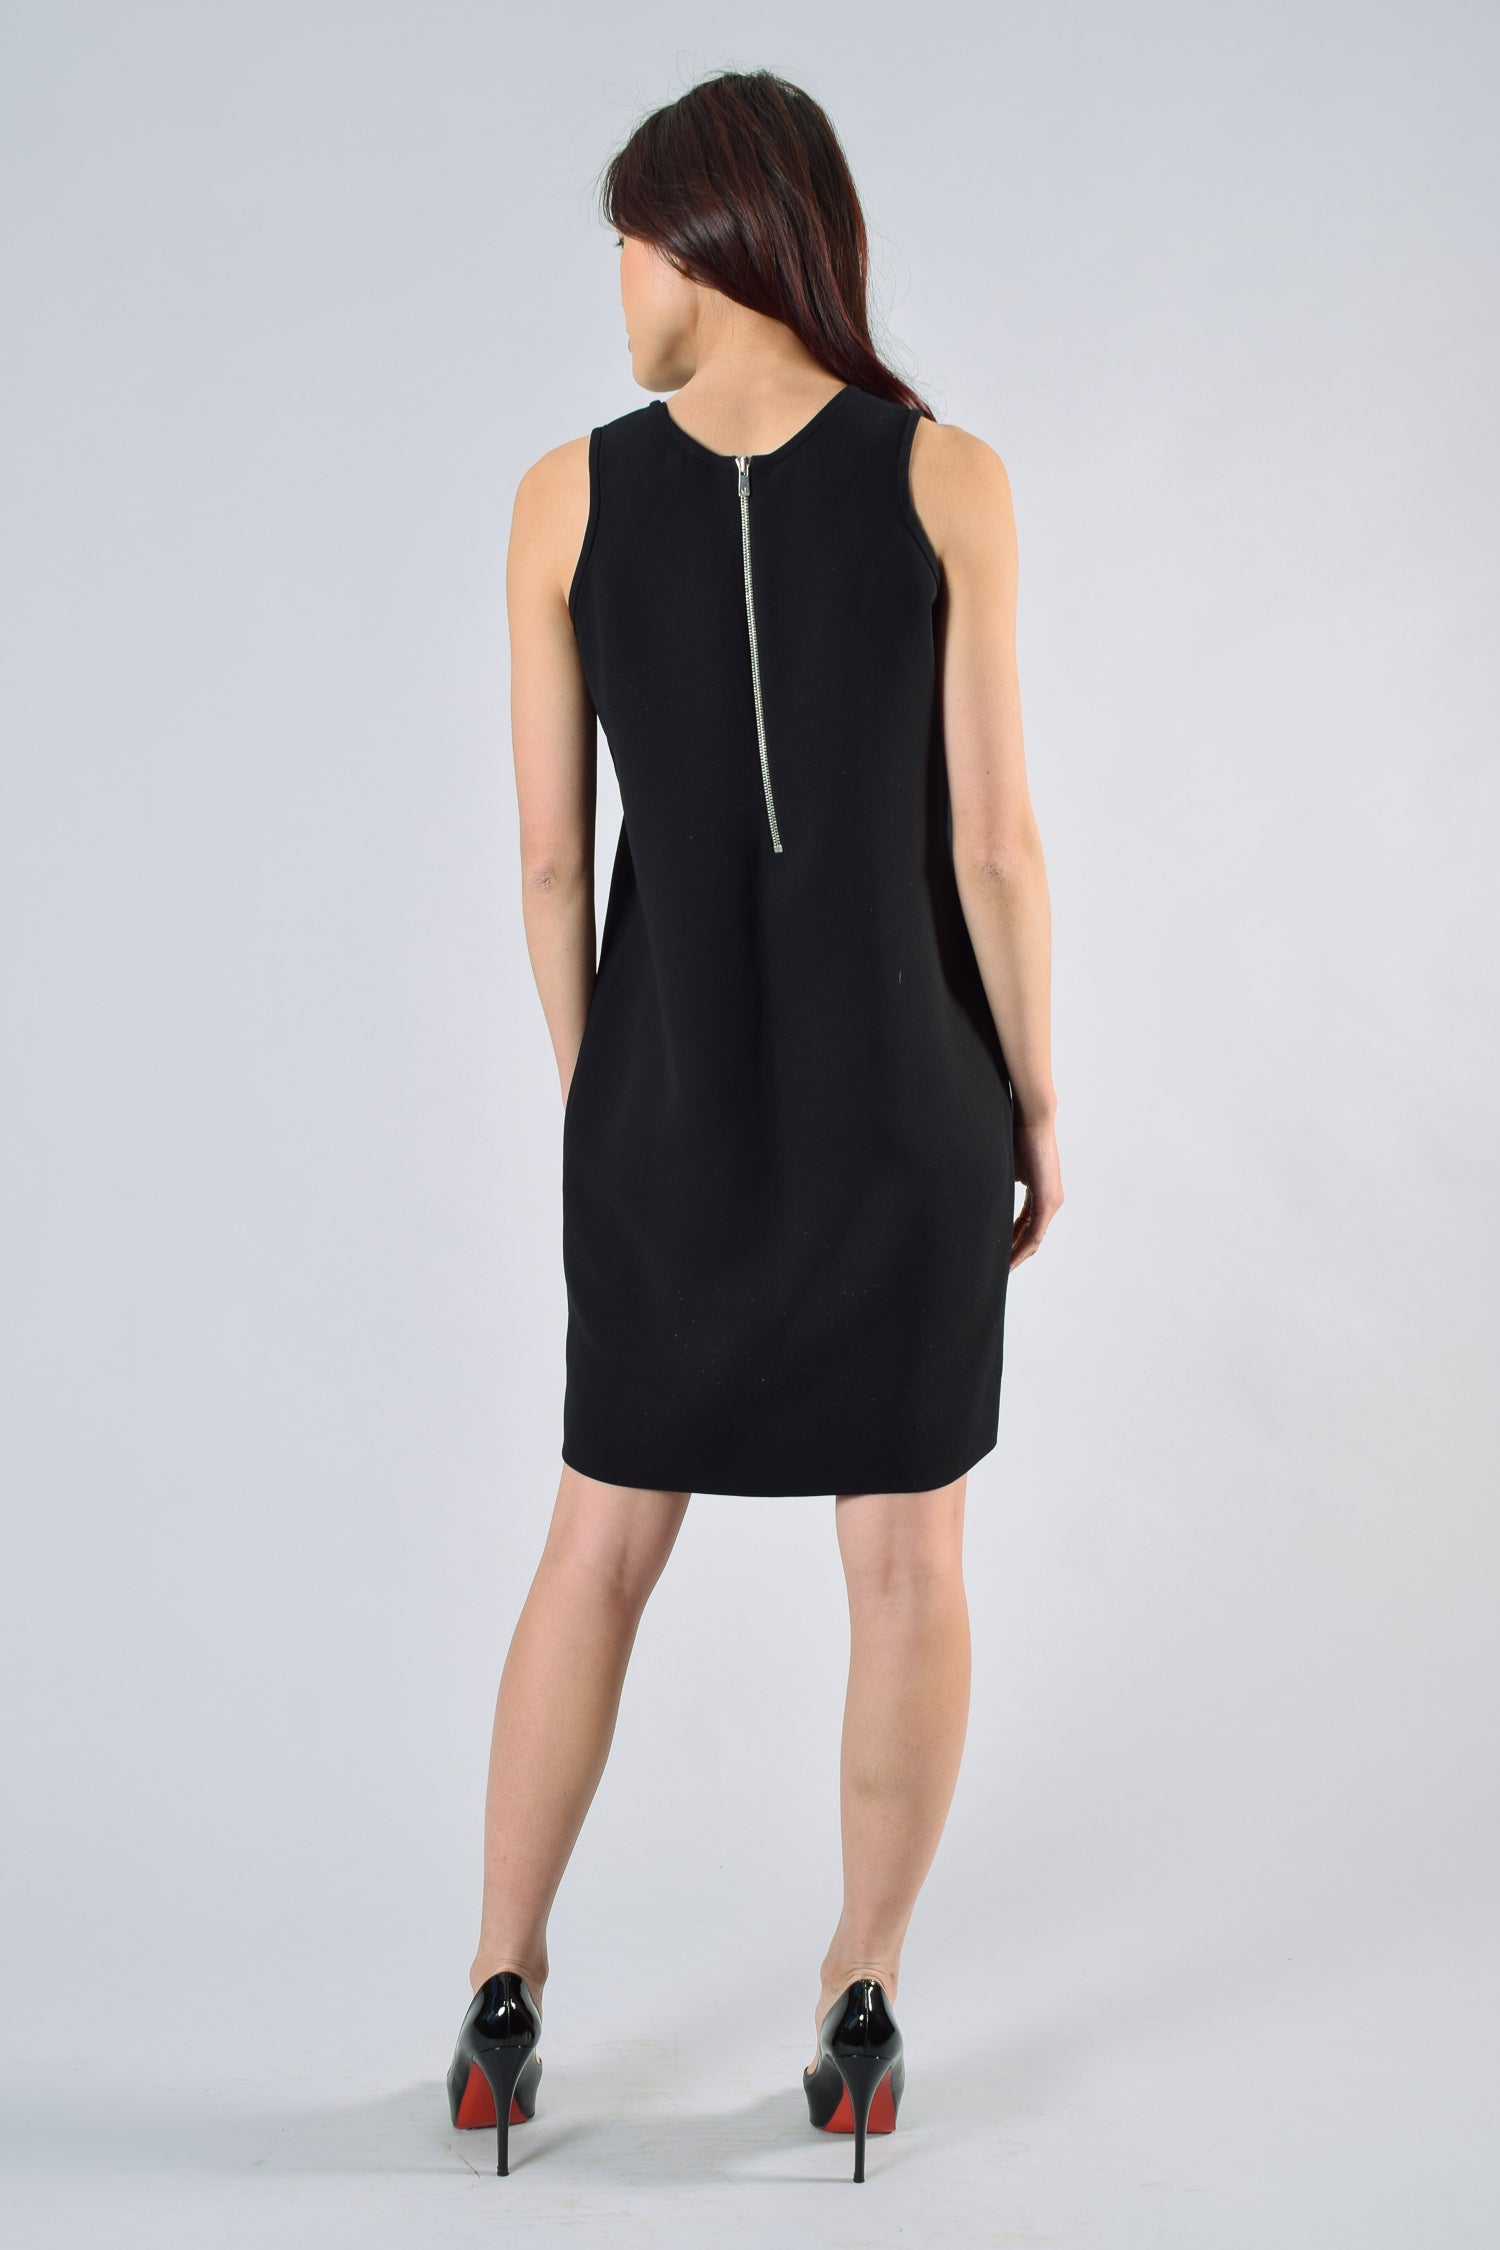 Sandro Black Dress With Silver Beaded Collar Size 2